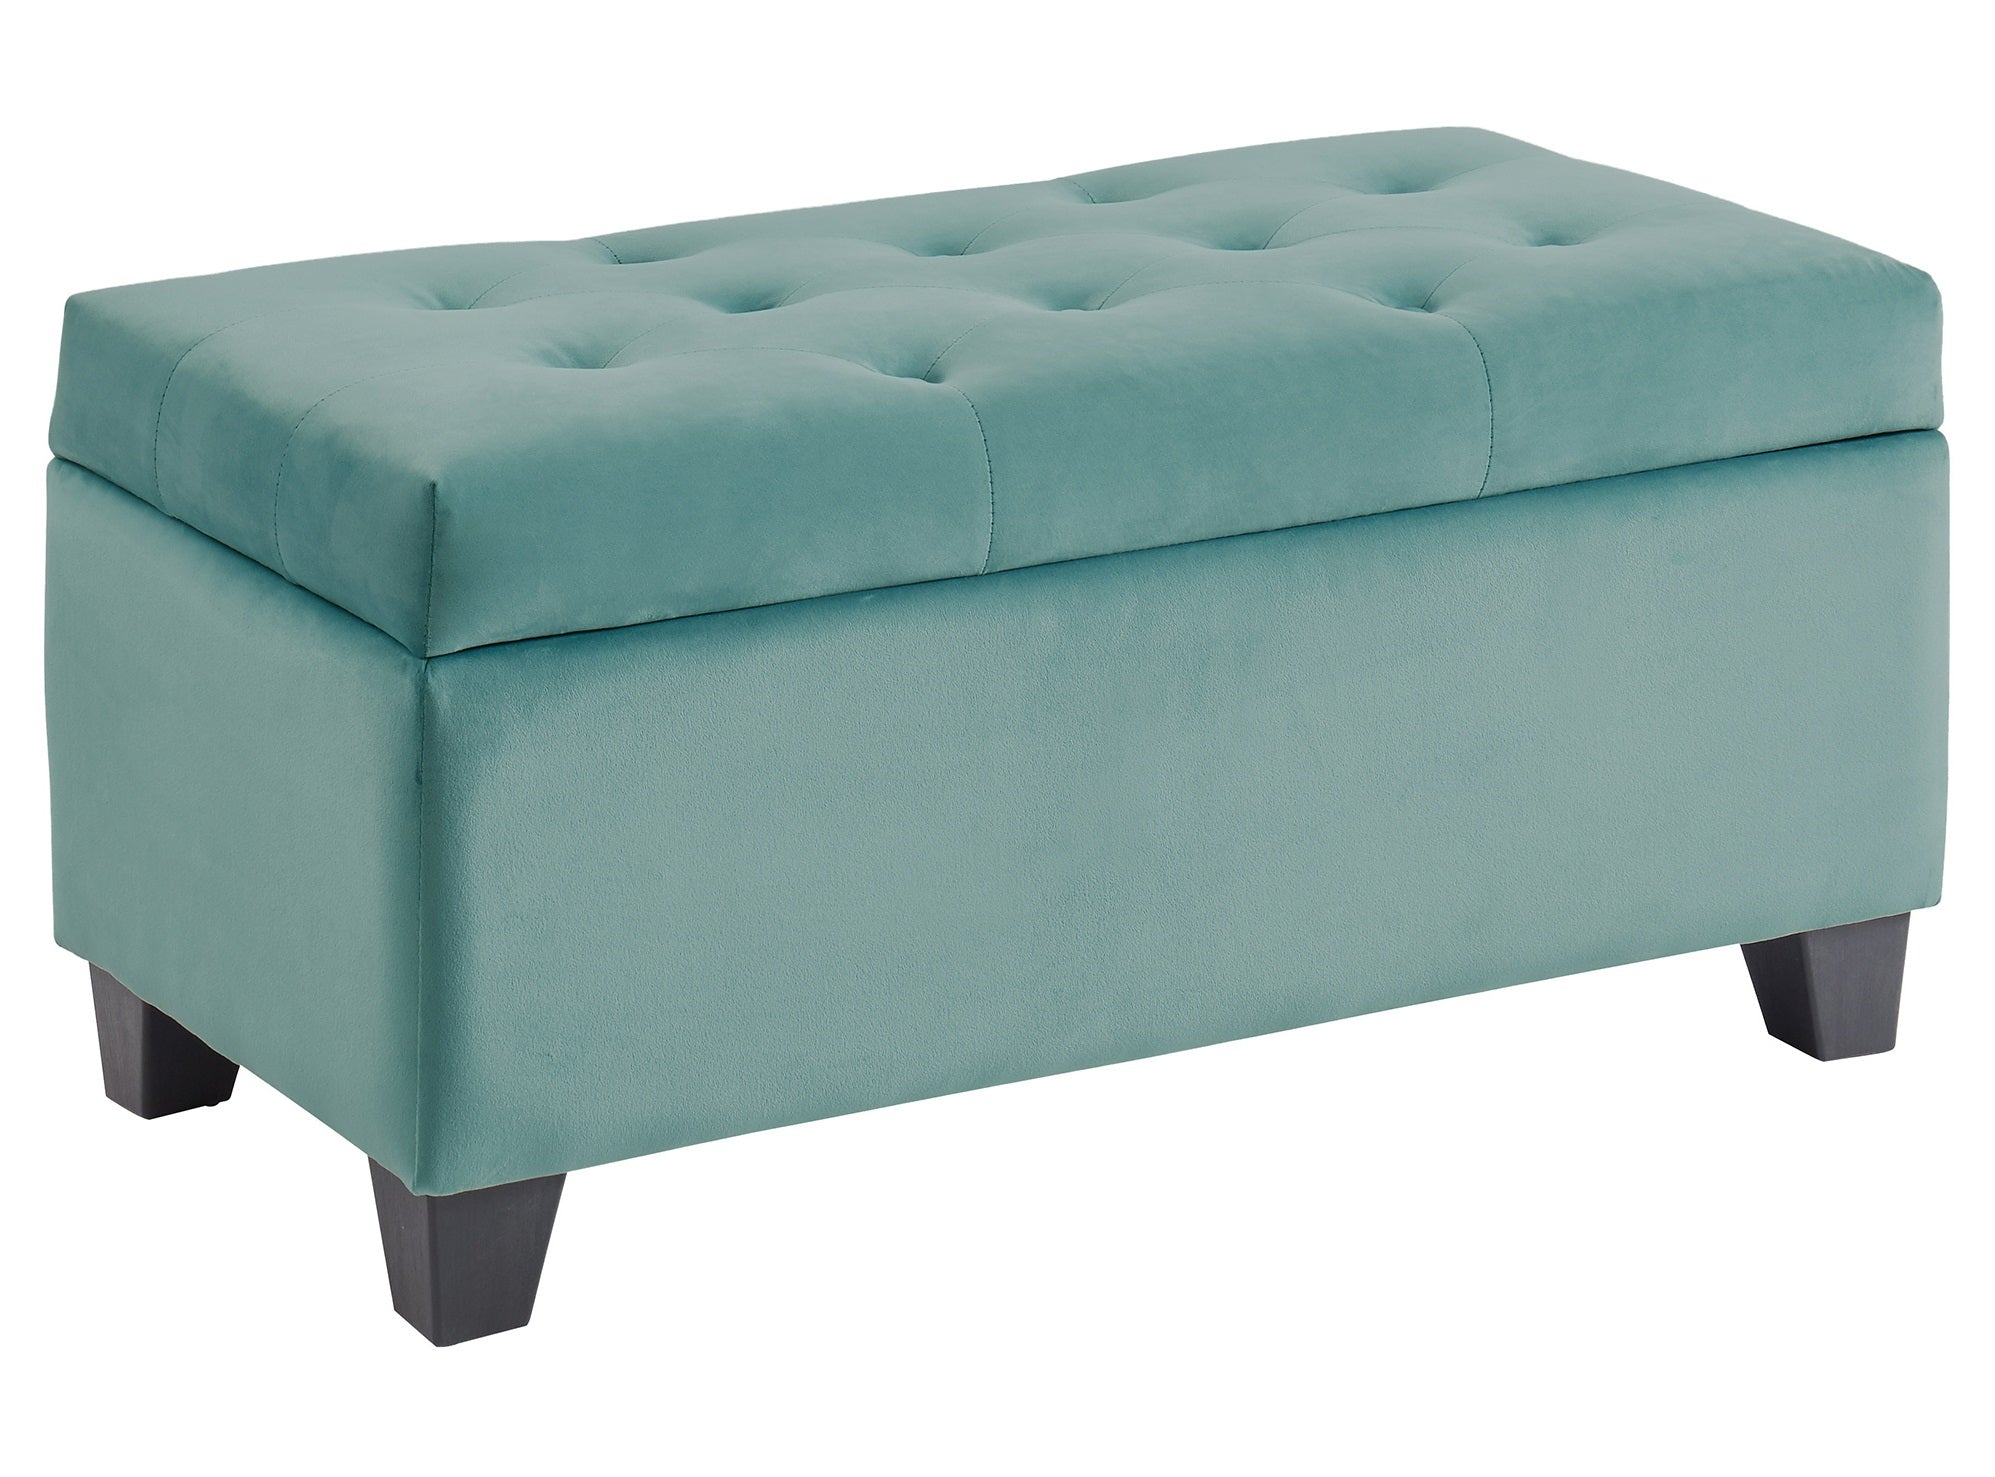 Sally Rectangular Storage Ottoman - Teal